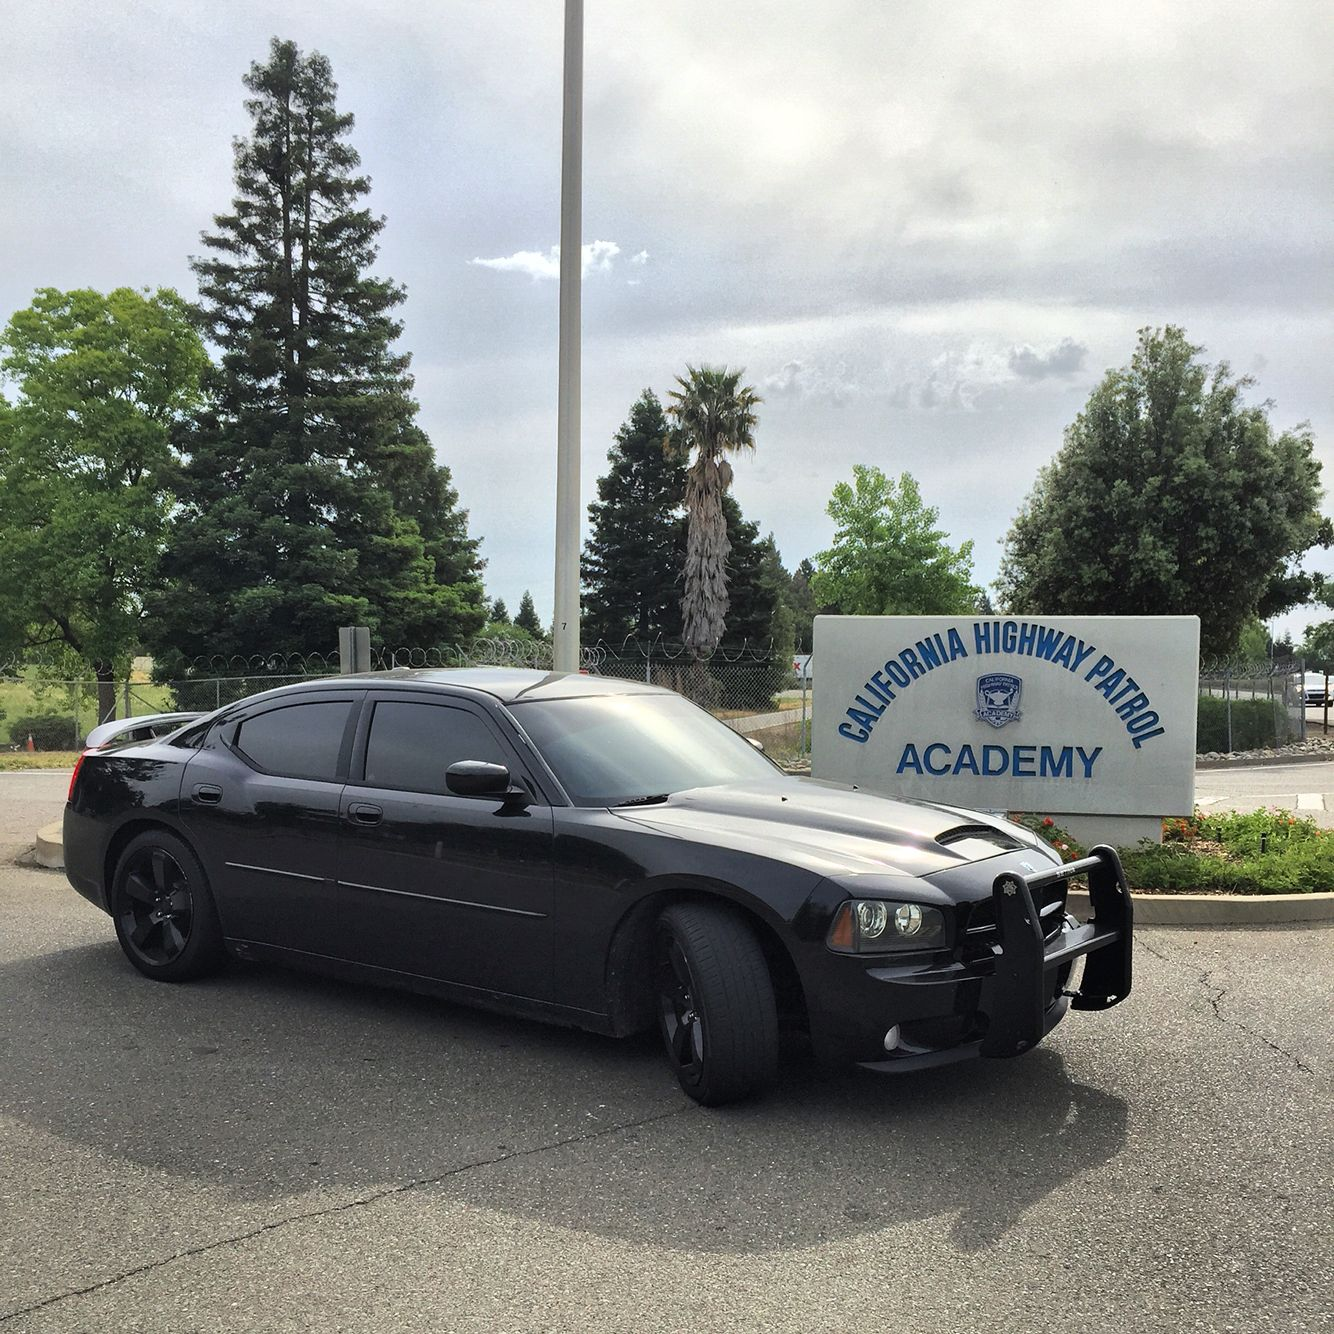 Used Chp Cars For Sale Sacramento >> Chp Academy West Sacramento And A Dodge Charger Mopars Pinterest